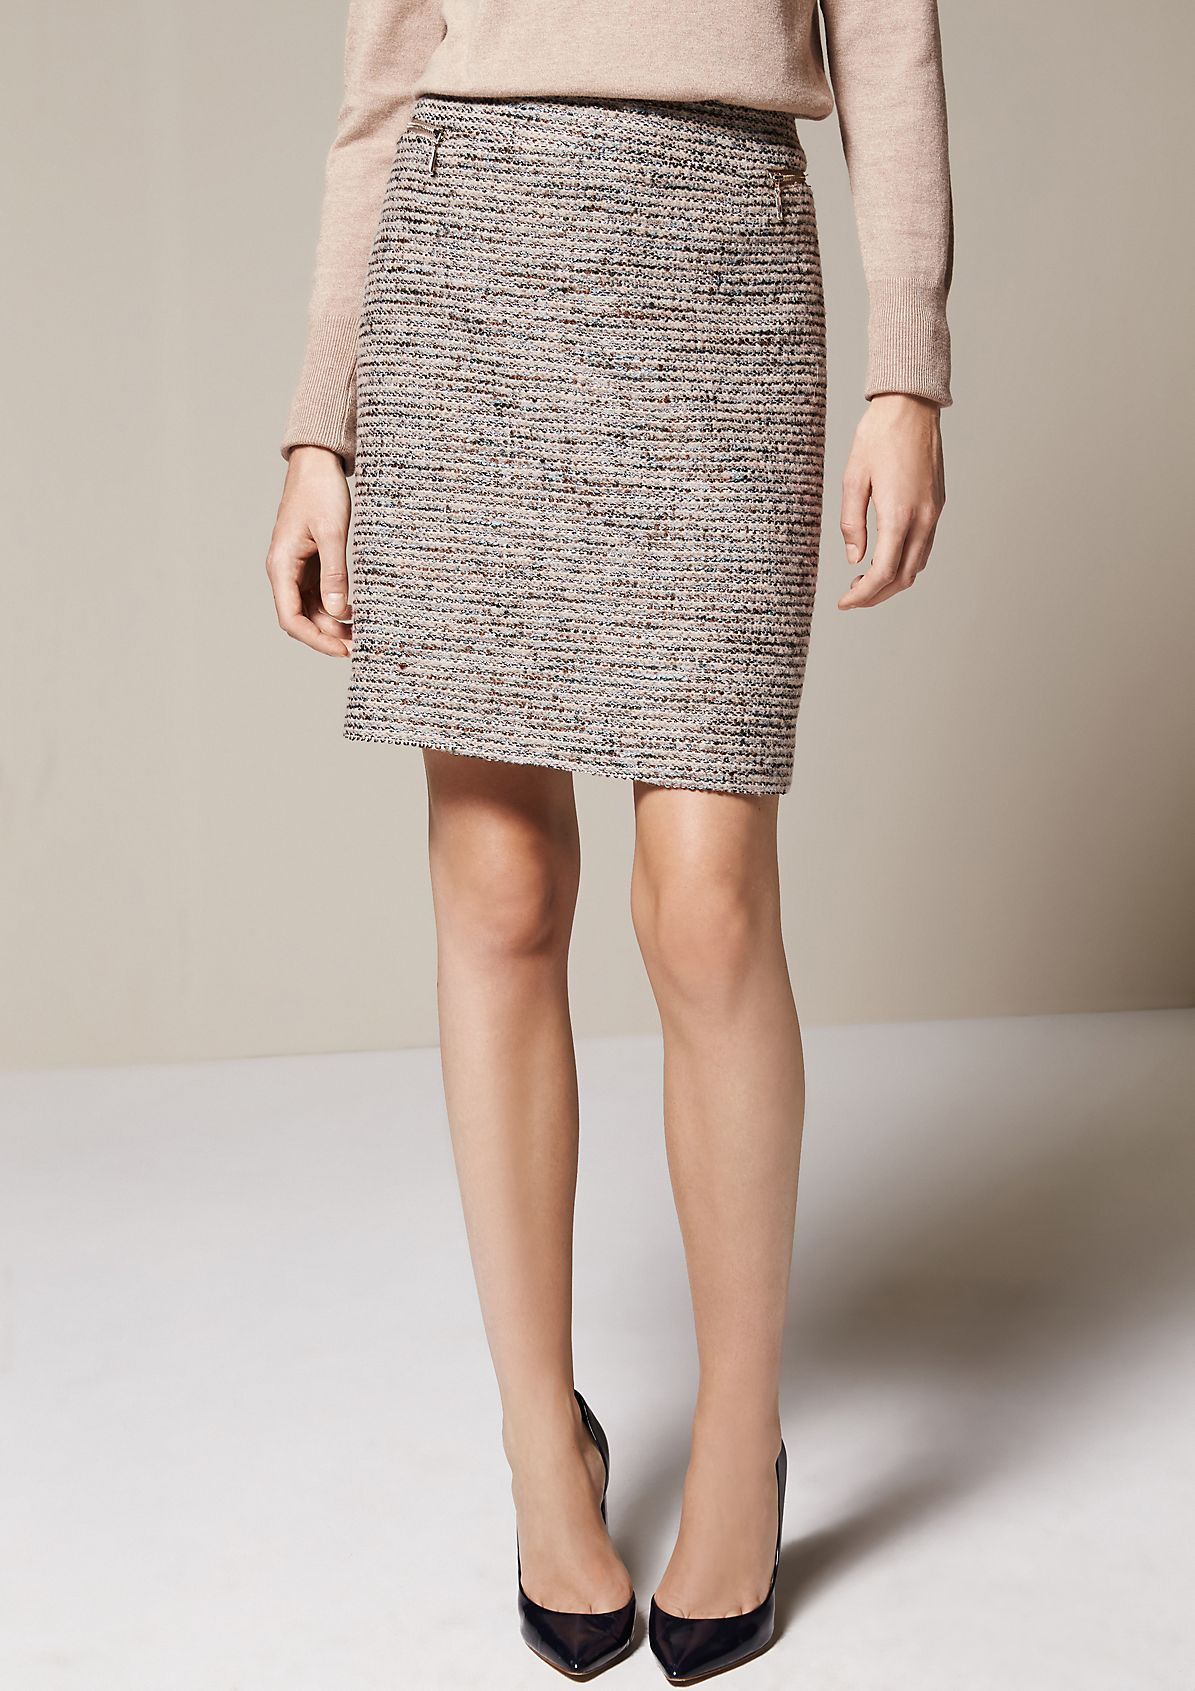 Elegant short skirt with an exciting pattern from s.Oliver